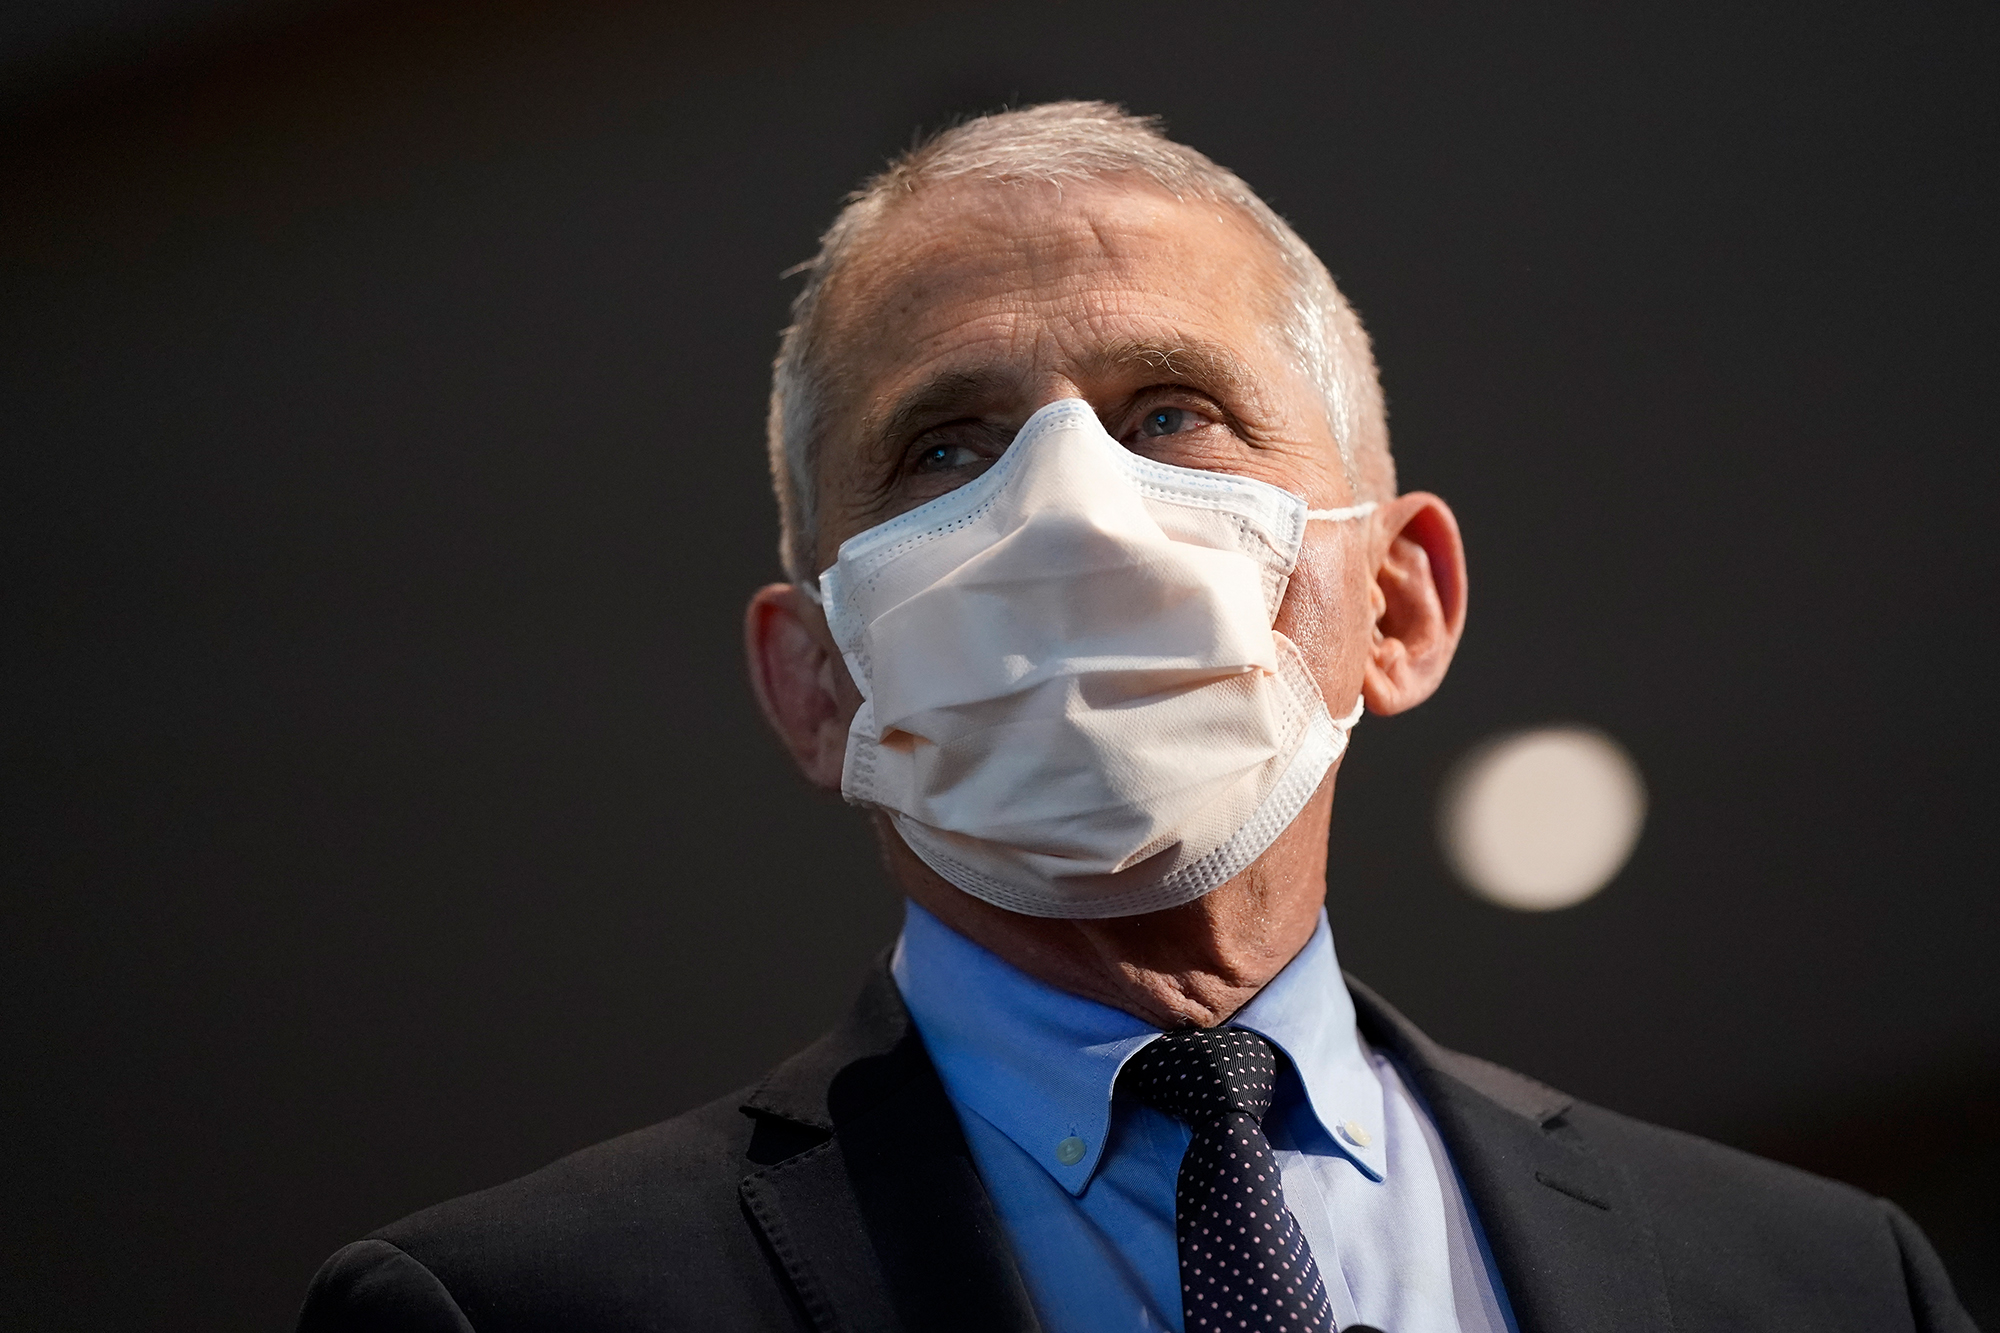 Dr. Anthony Fauci on December 22, 2020.